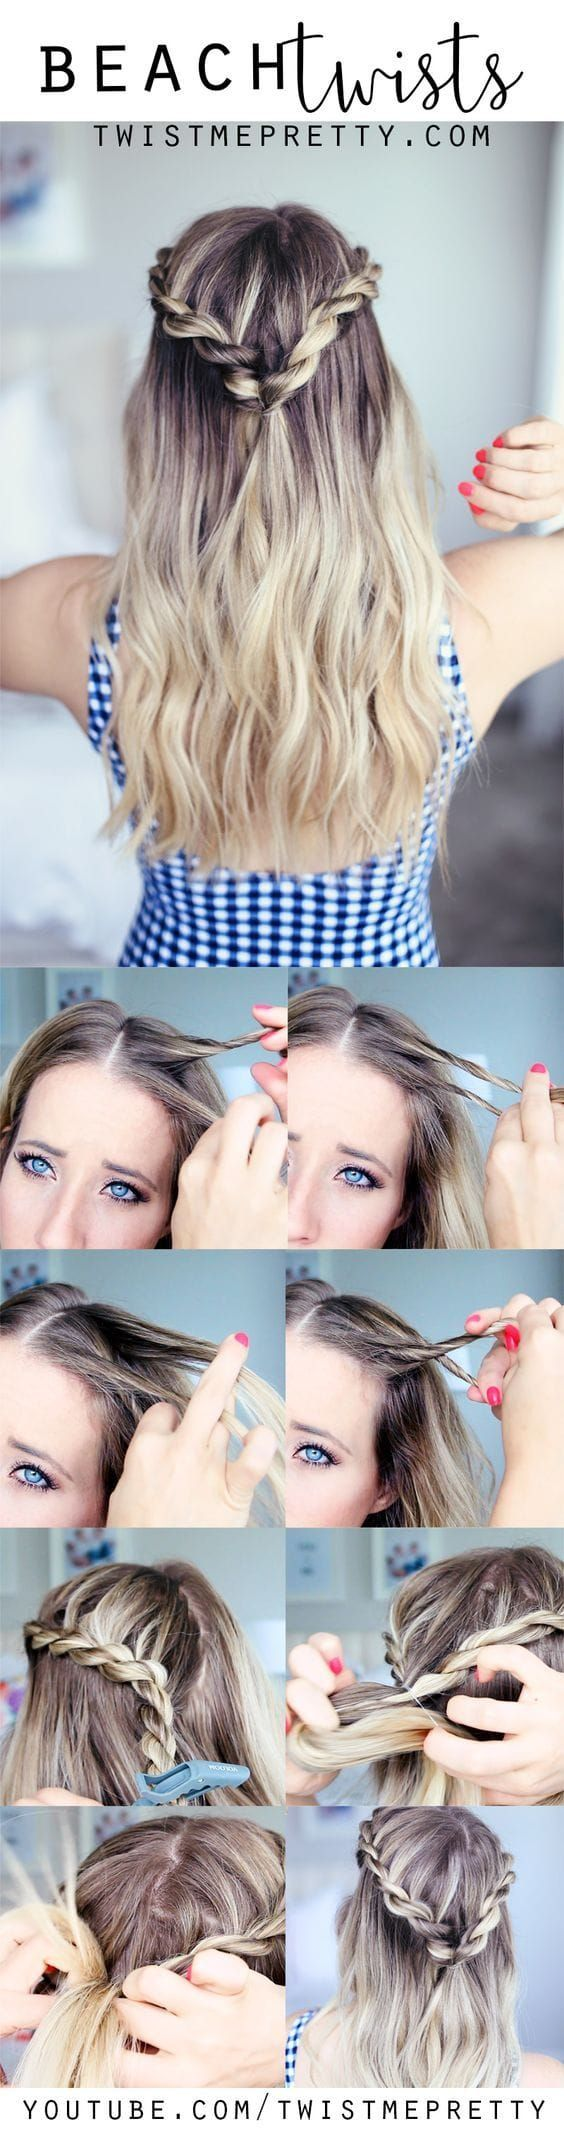 hair style makeup and hair makeup